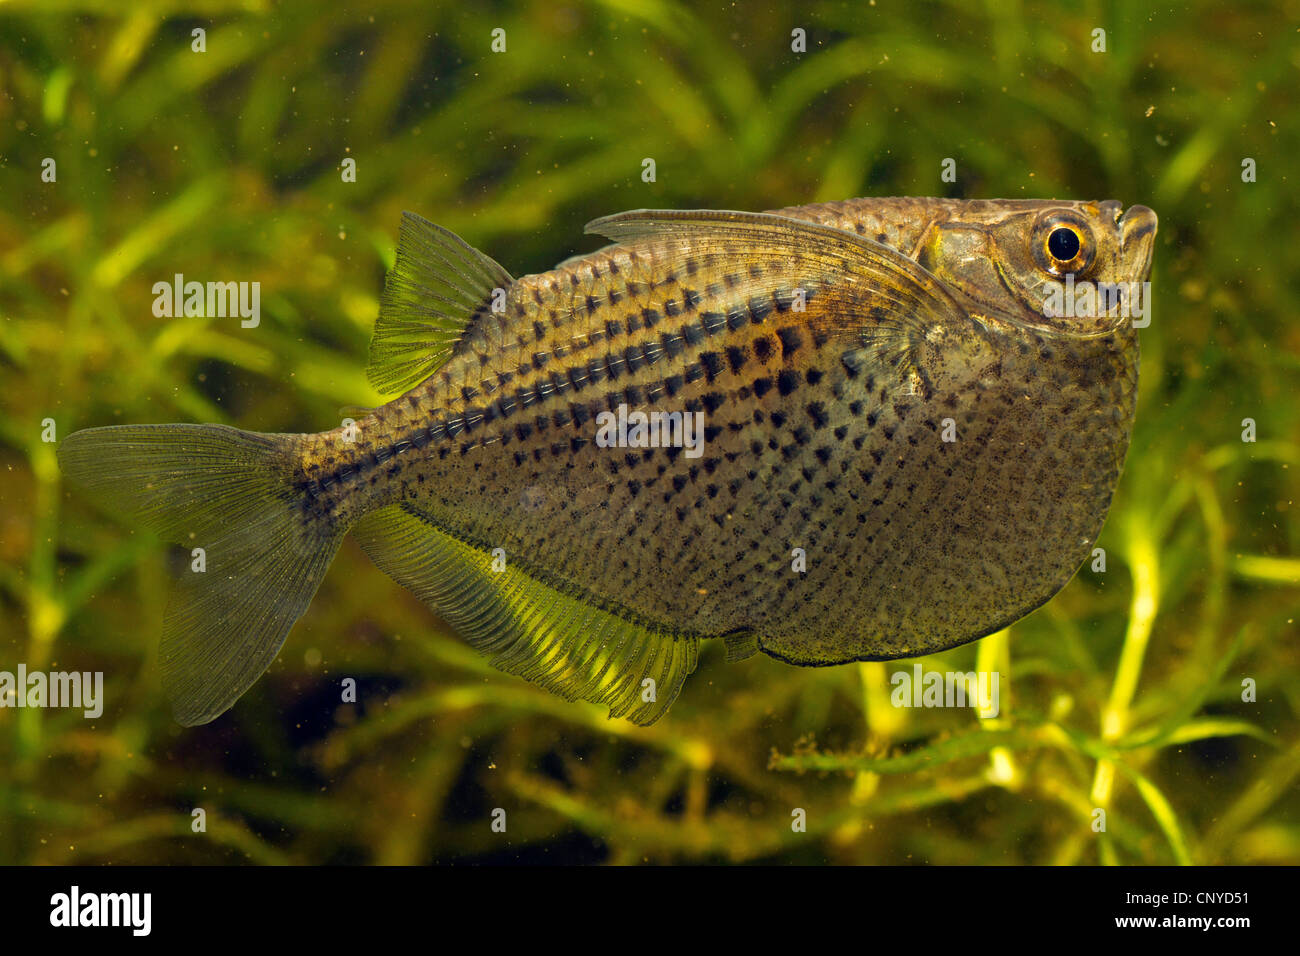 spotted hatchetfish (Gasteropelecus maculatus), fish among water plants - Stock Image